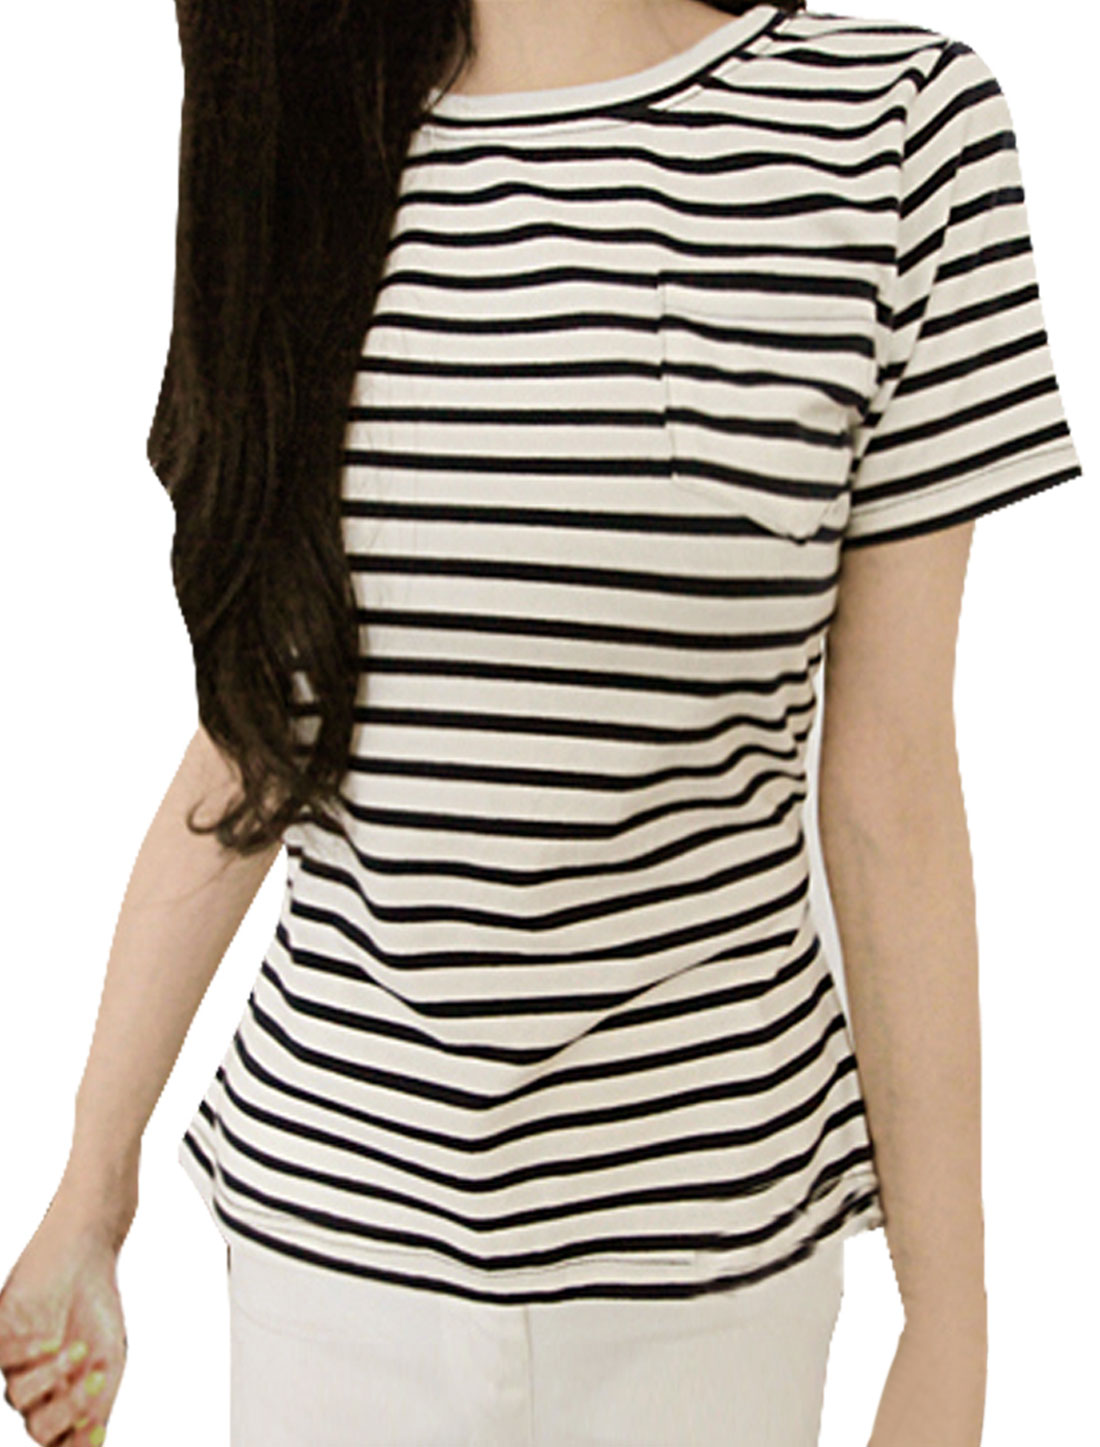 Women Softness Short Sleeve Stripes Shape Stretch Shirt Black White XS